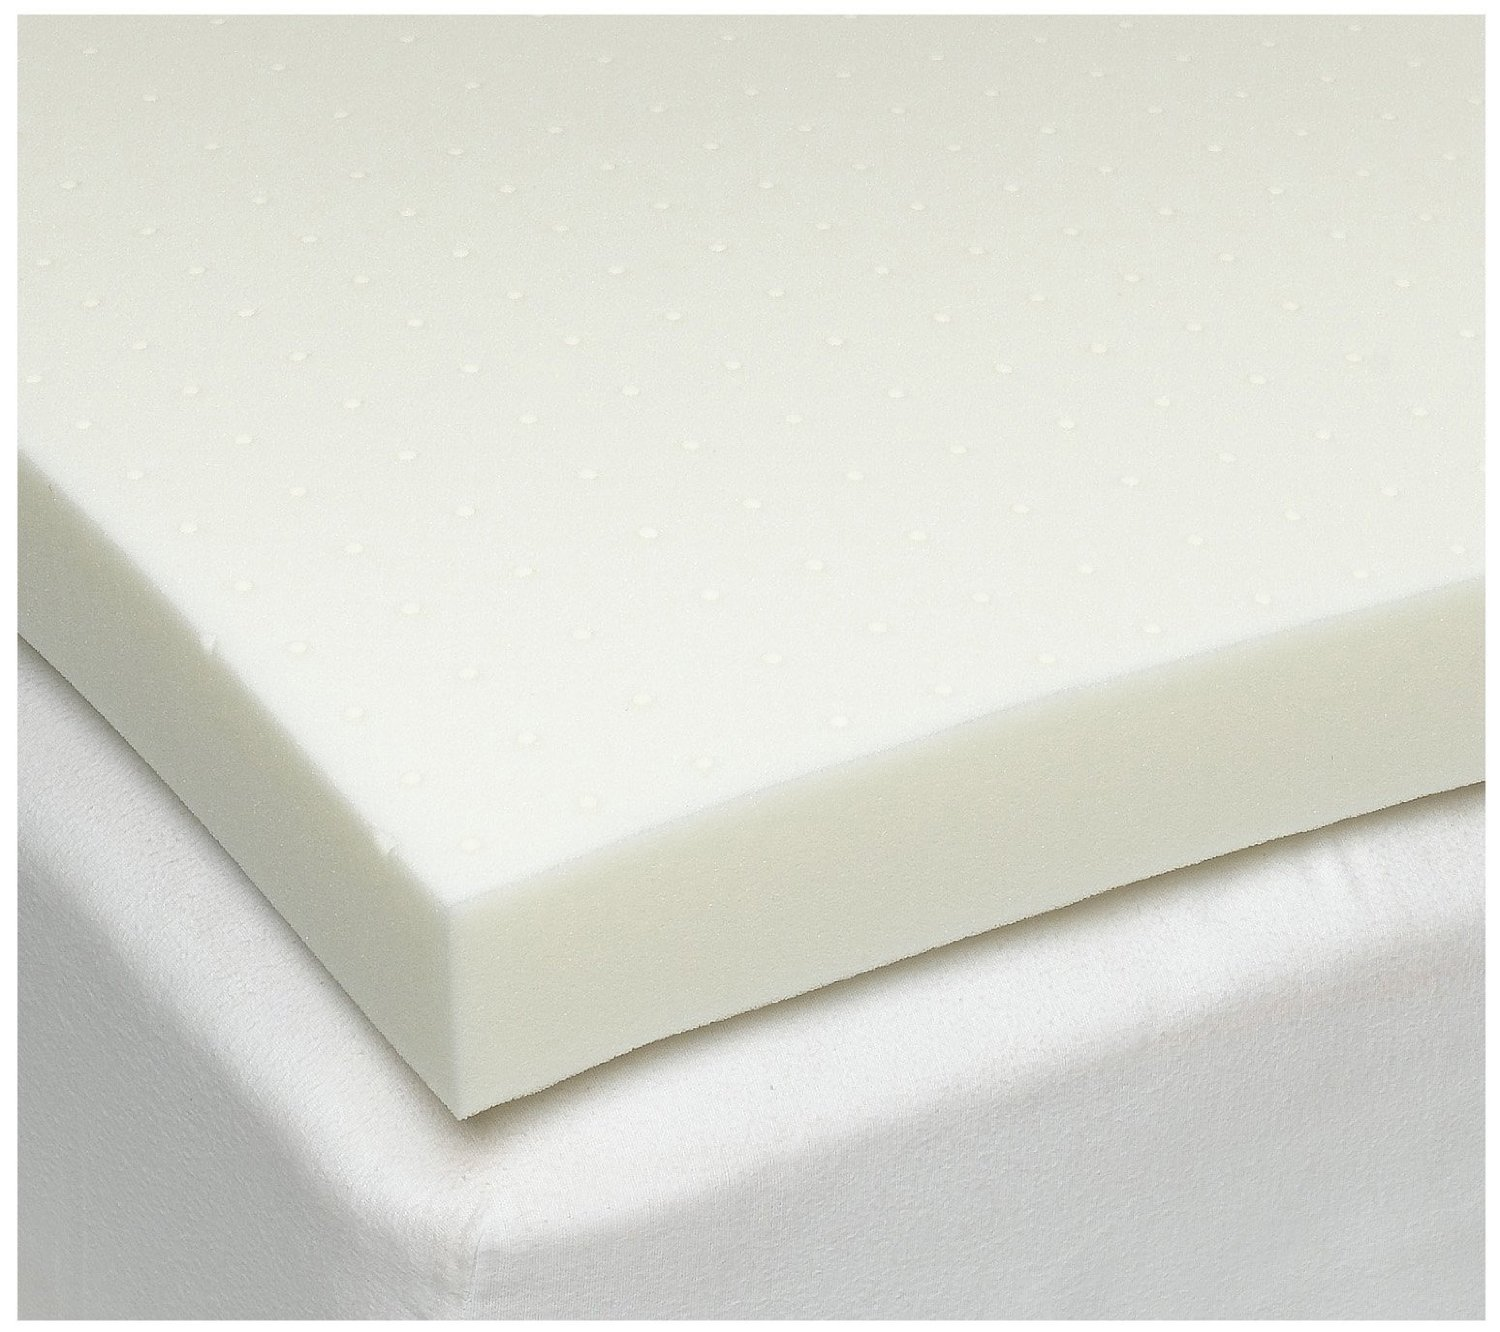 Serta 3 inch memory foam mattress topper - The Sleep Joy 4 Inch Visco2 Ventilated Topper